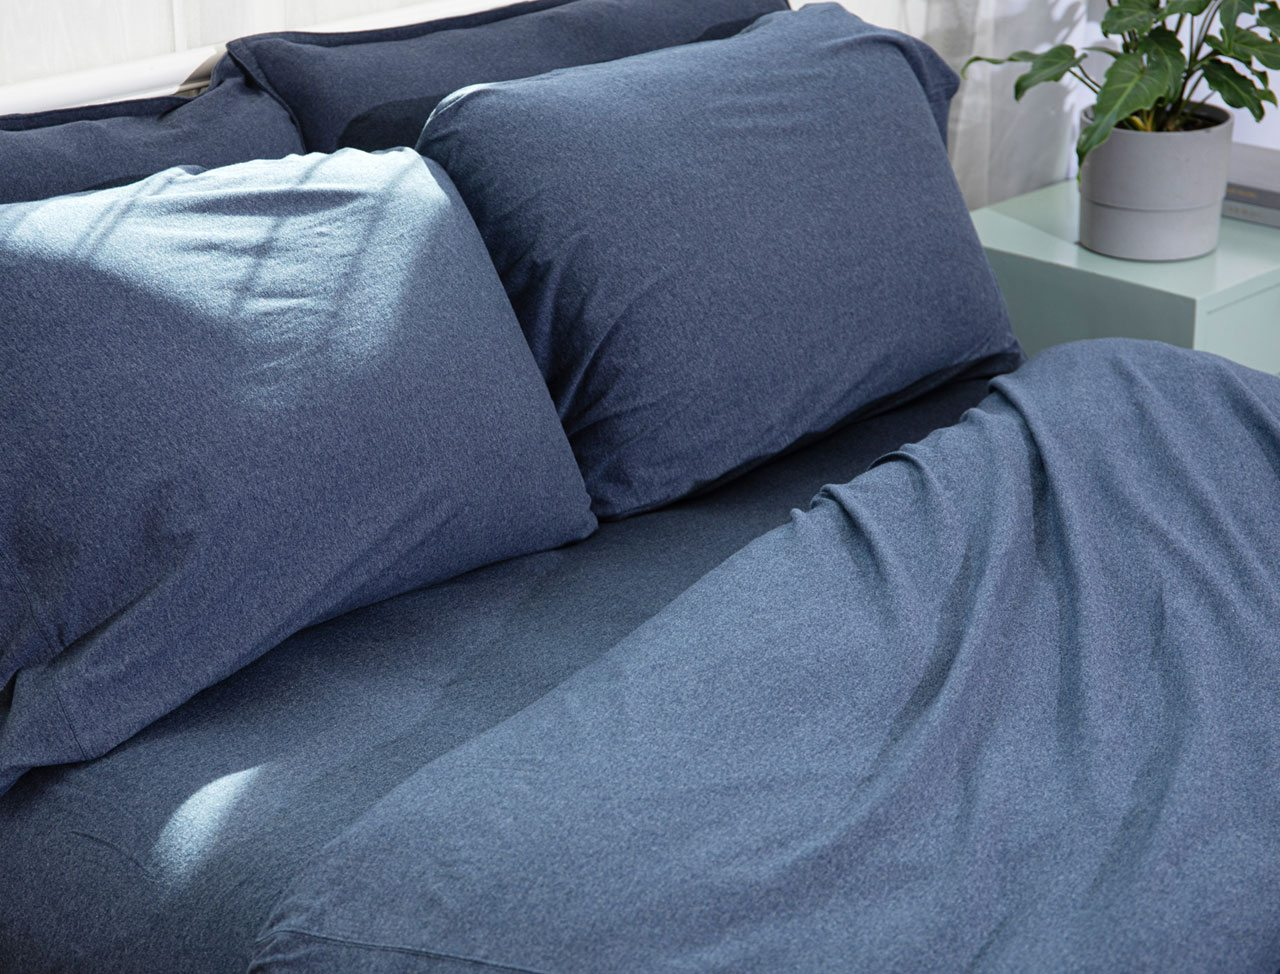 Favorite Tee Sheets in Indigo Heather